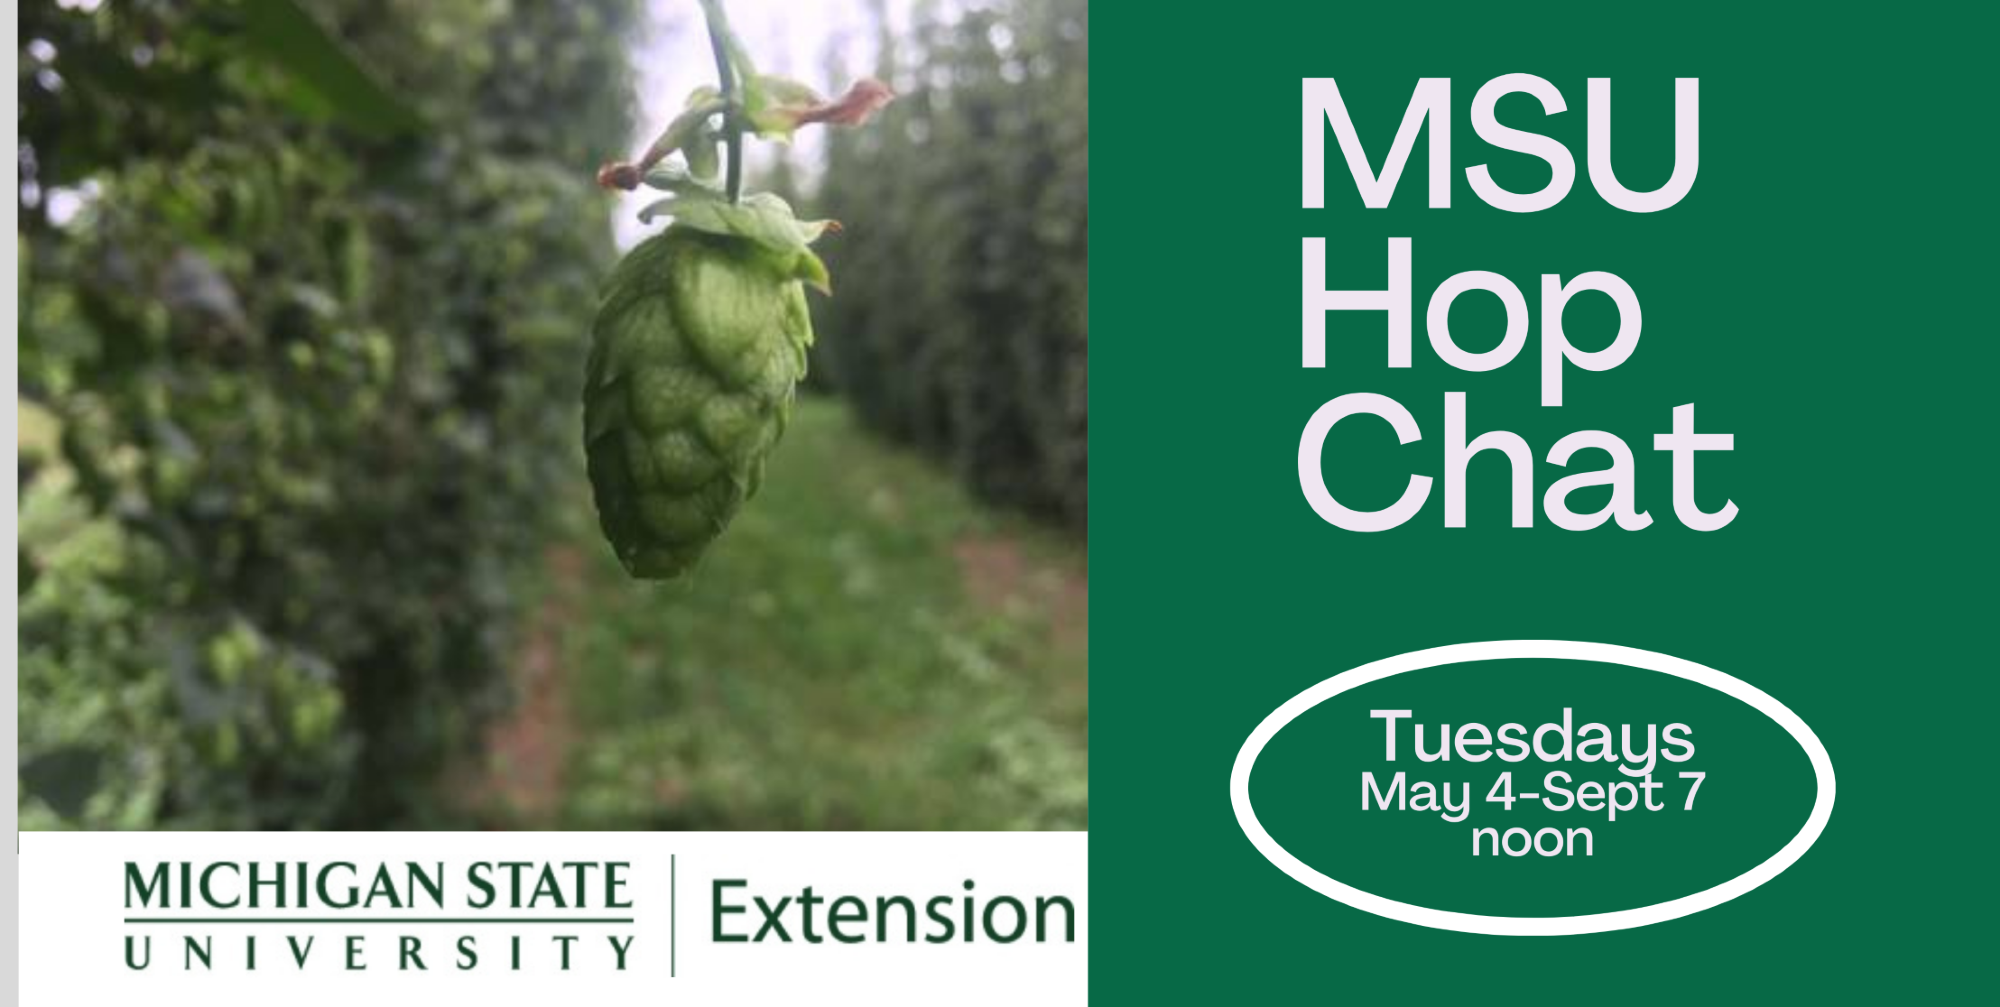 Michigan state university hopchat logo.